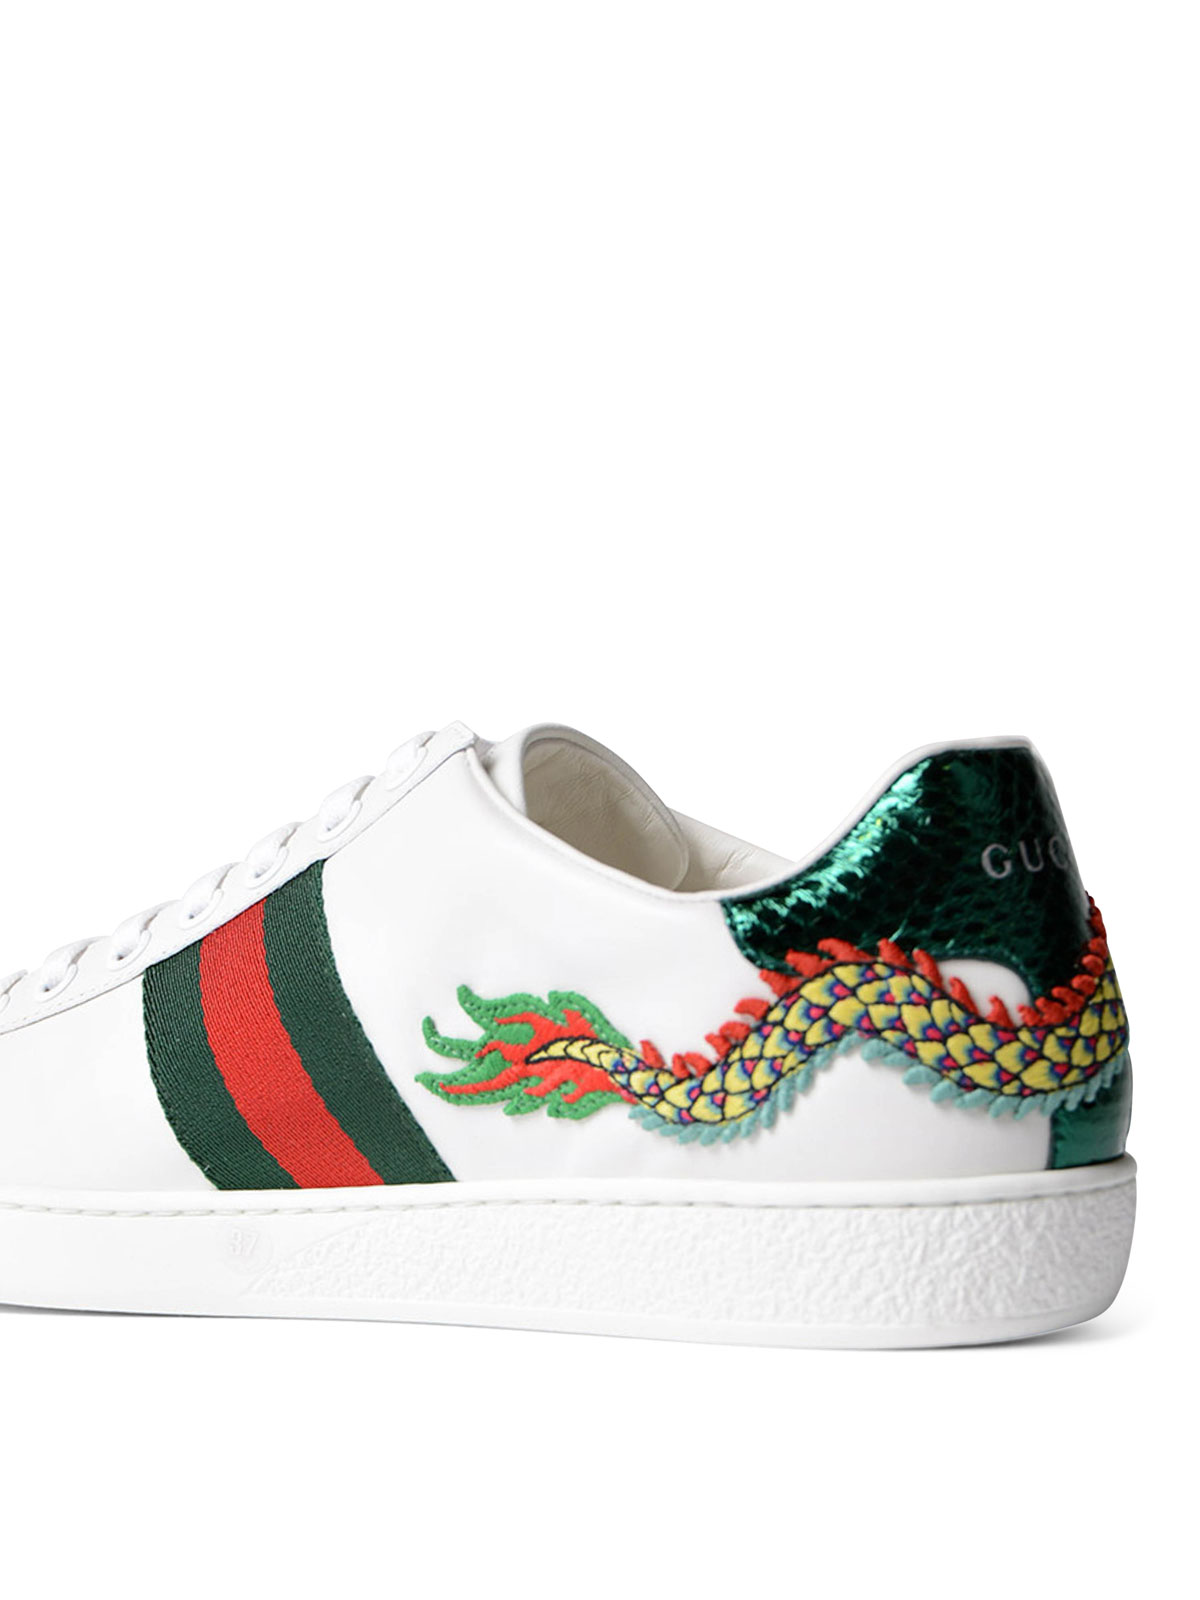 d0833e7971b Gucci - Ace embroidered low top sneakers - trainers - 475221A38G09064